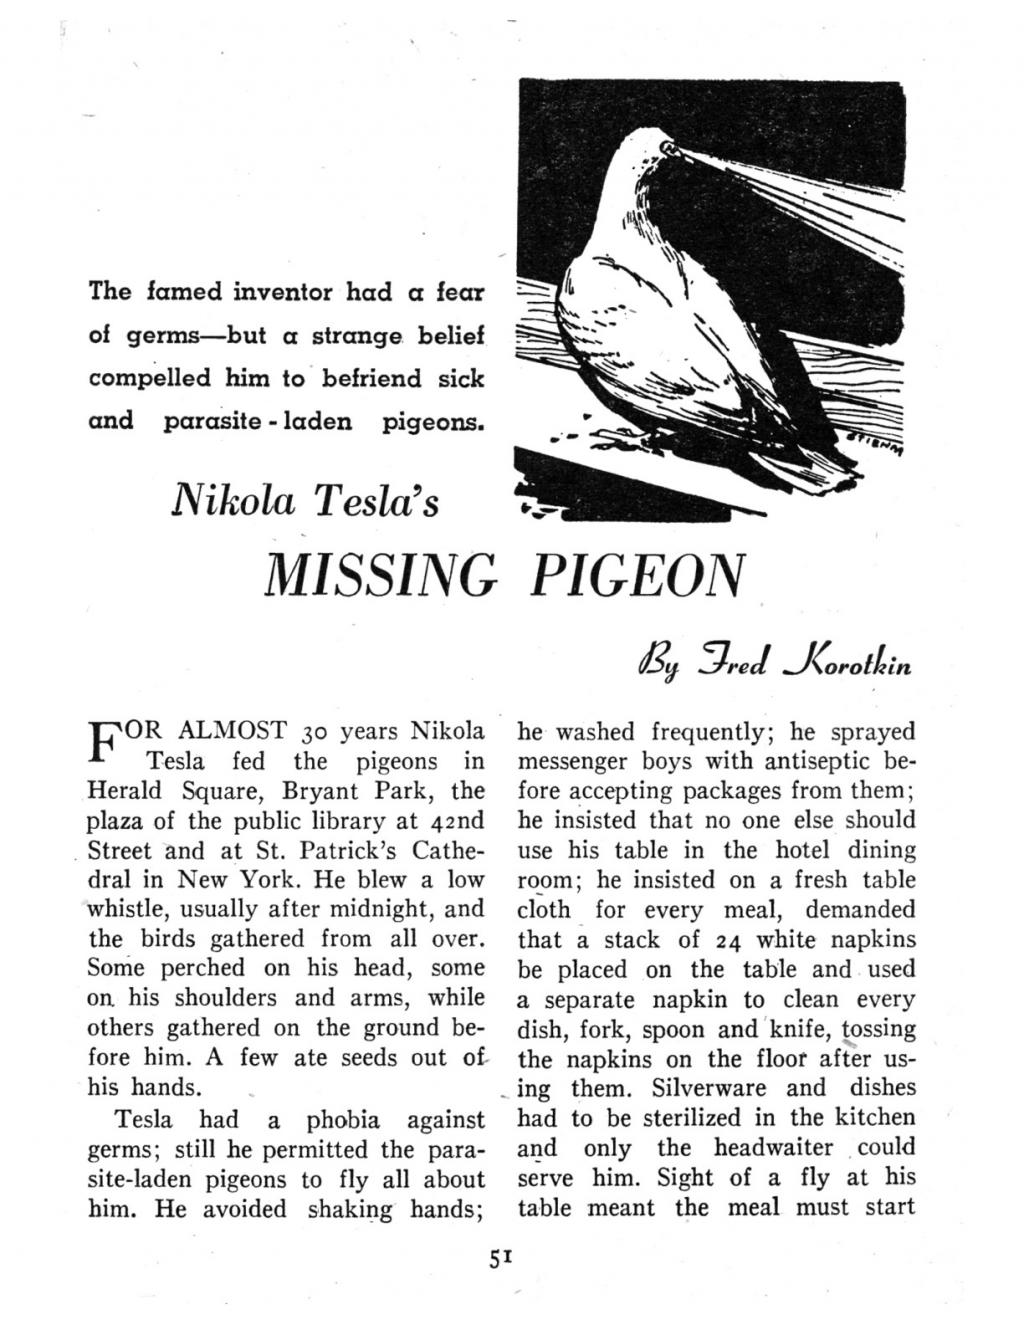 Preview of Nikola Tesla's Missing Pigeon article